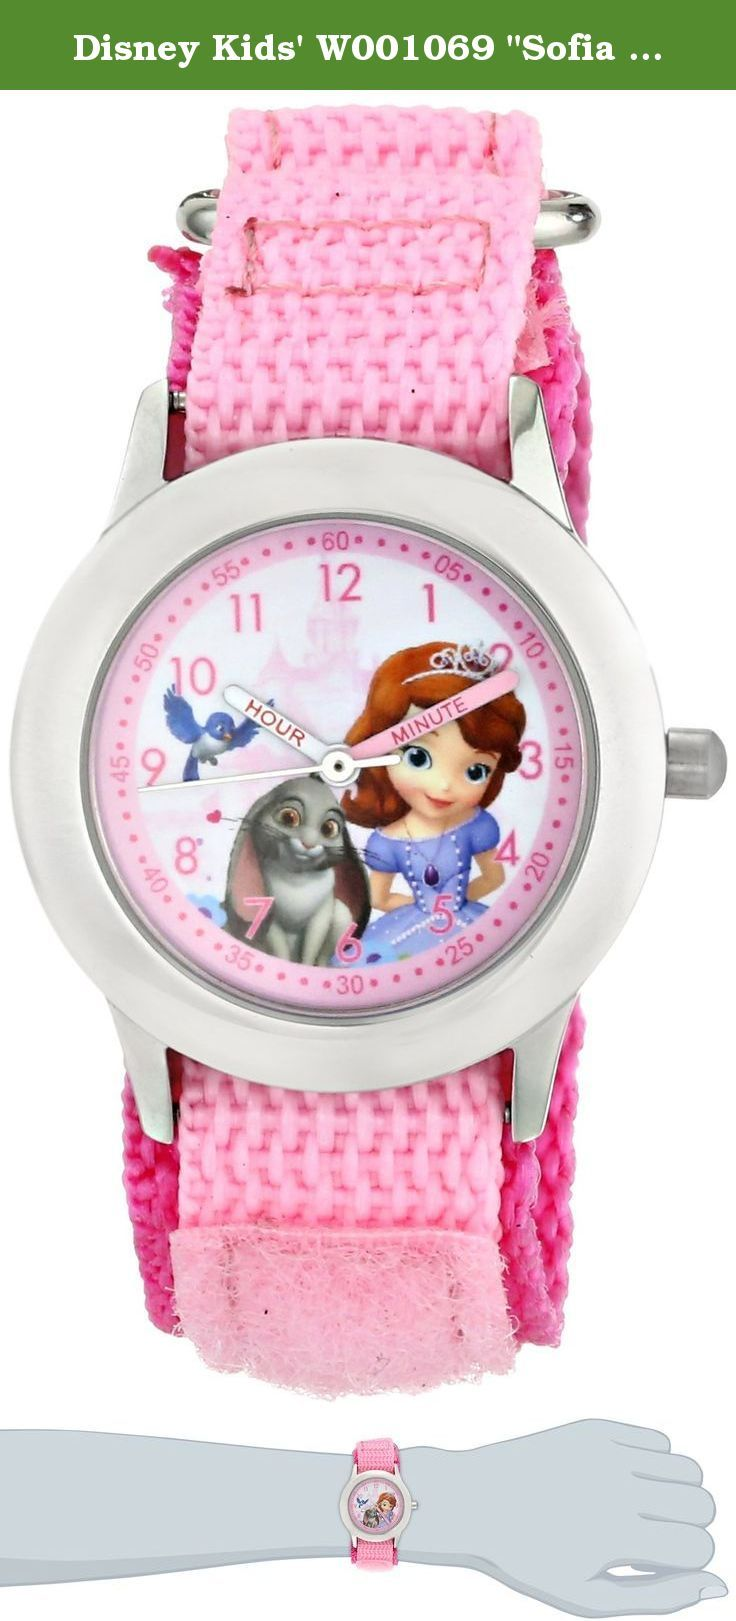 """Disney Kids' W001069 """"Sofia Time Teacher"""" Stainless Steel Watch with Pink Nylon Band. Safety Warnings: CHOKING HAZARD - Toy contains a small ball. Not for children under 3 yrs. Disney Kid's Sofia Stainless Steel Watch, 32mm stainless steel case, 16mm Pink VELCRO® brand closure Strap, dial features Sofia. Mineral glass crystal, stainless steel back, Japan quartz movement, water resistance to 100 feet. Sofia the First toys and games transport your child to the imaginative world of royalty...."""